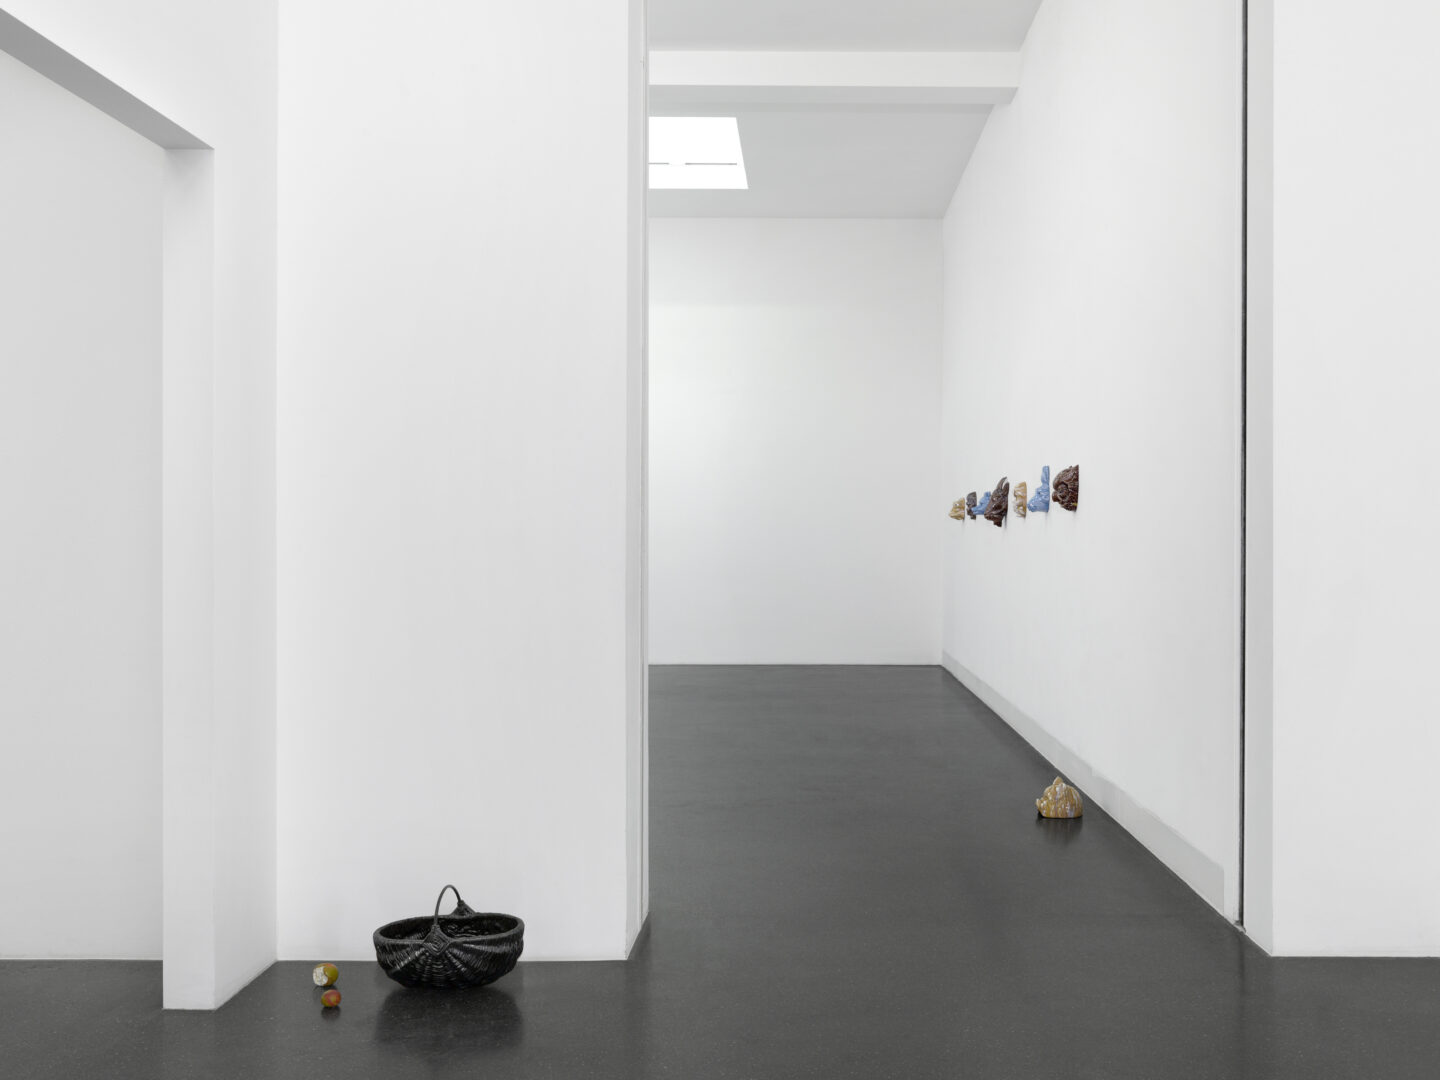 Exhibition View Mai-Thu Perret Soloshow «With an unbounded force» at Galerie Francesca Pia, Zurich, 2020 / Photo: Annik Wetter / Courtesy: the artist and Galerie Francesca Pia